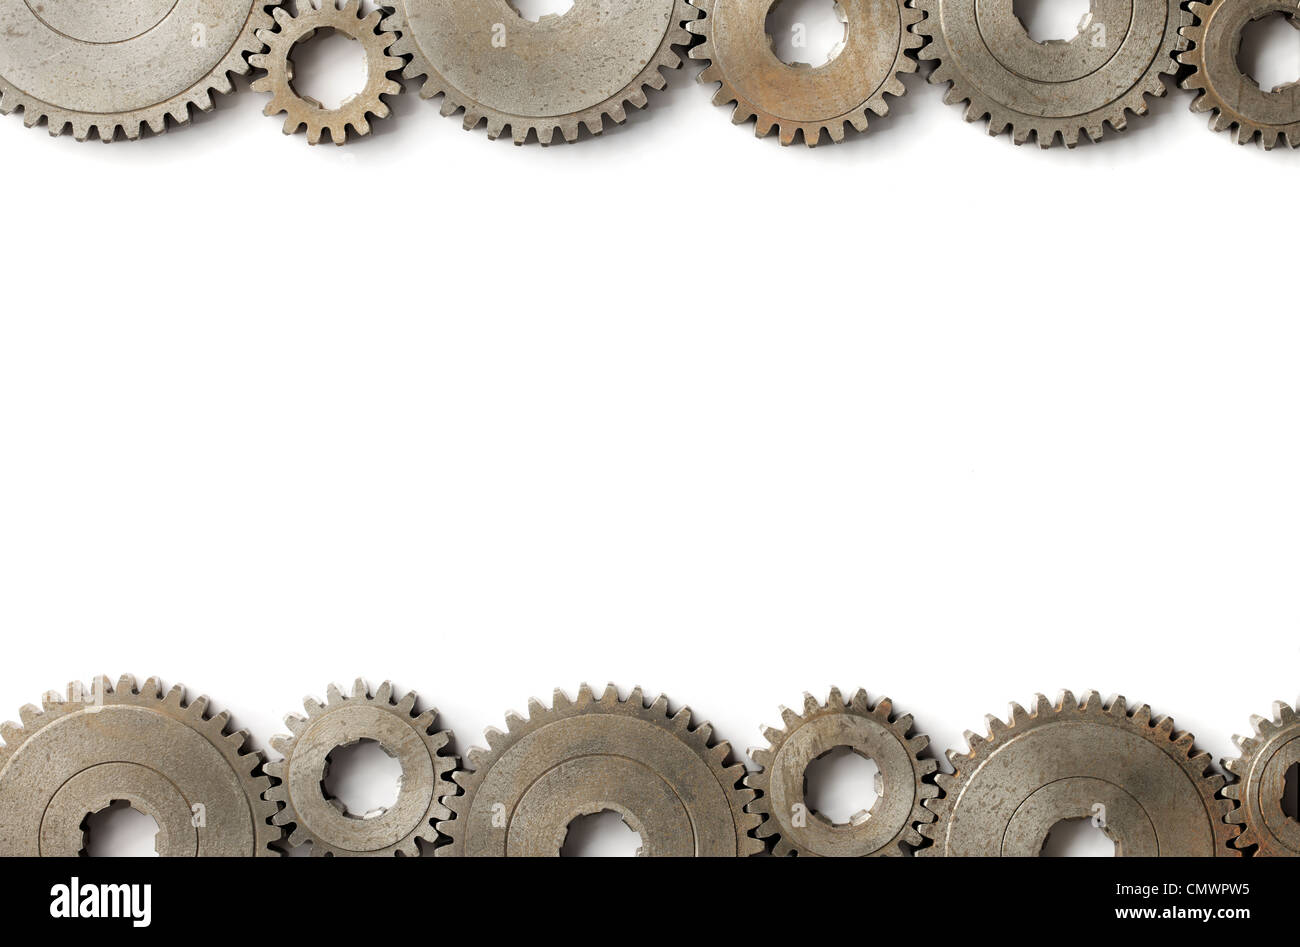 Background image with old cog gear wheels on the sides. - Stock Image